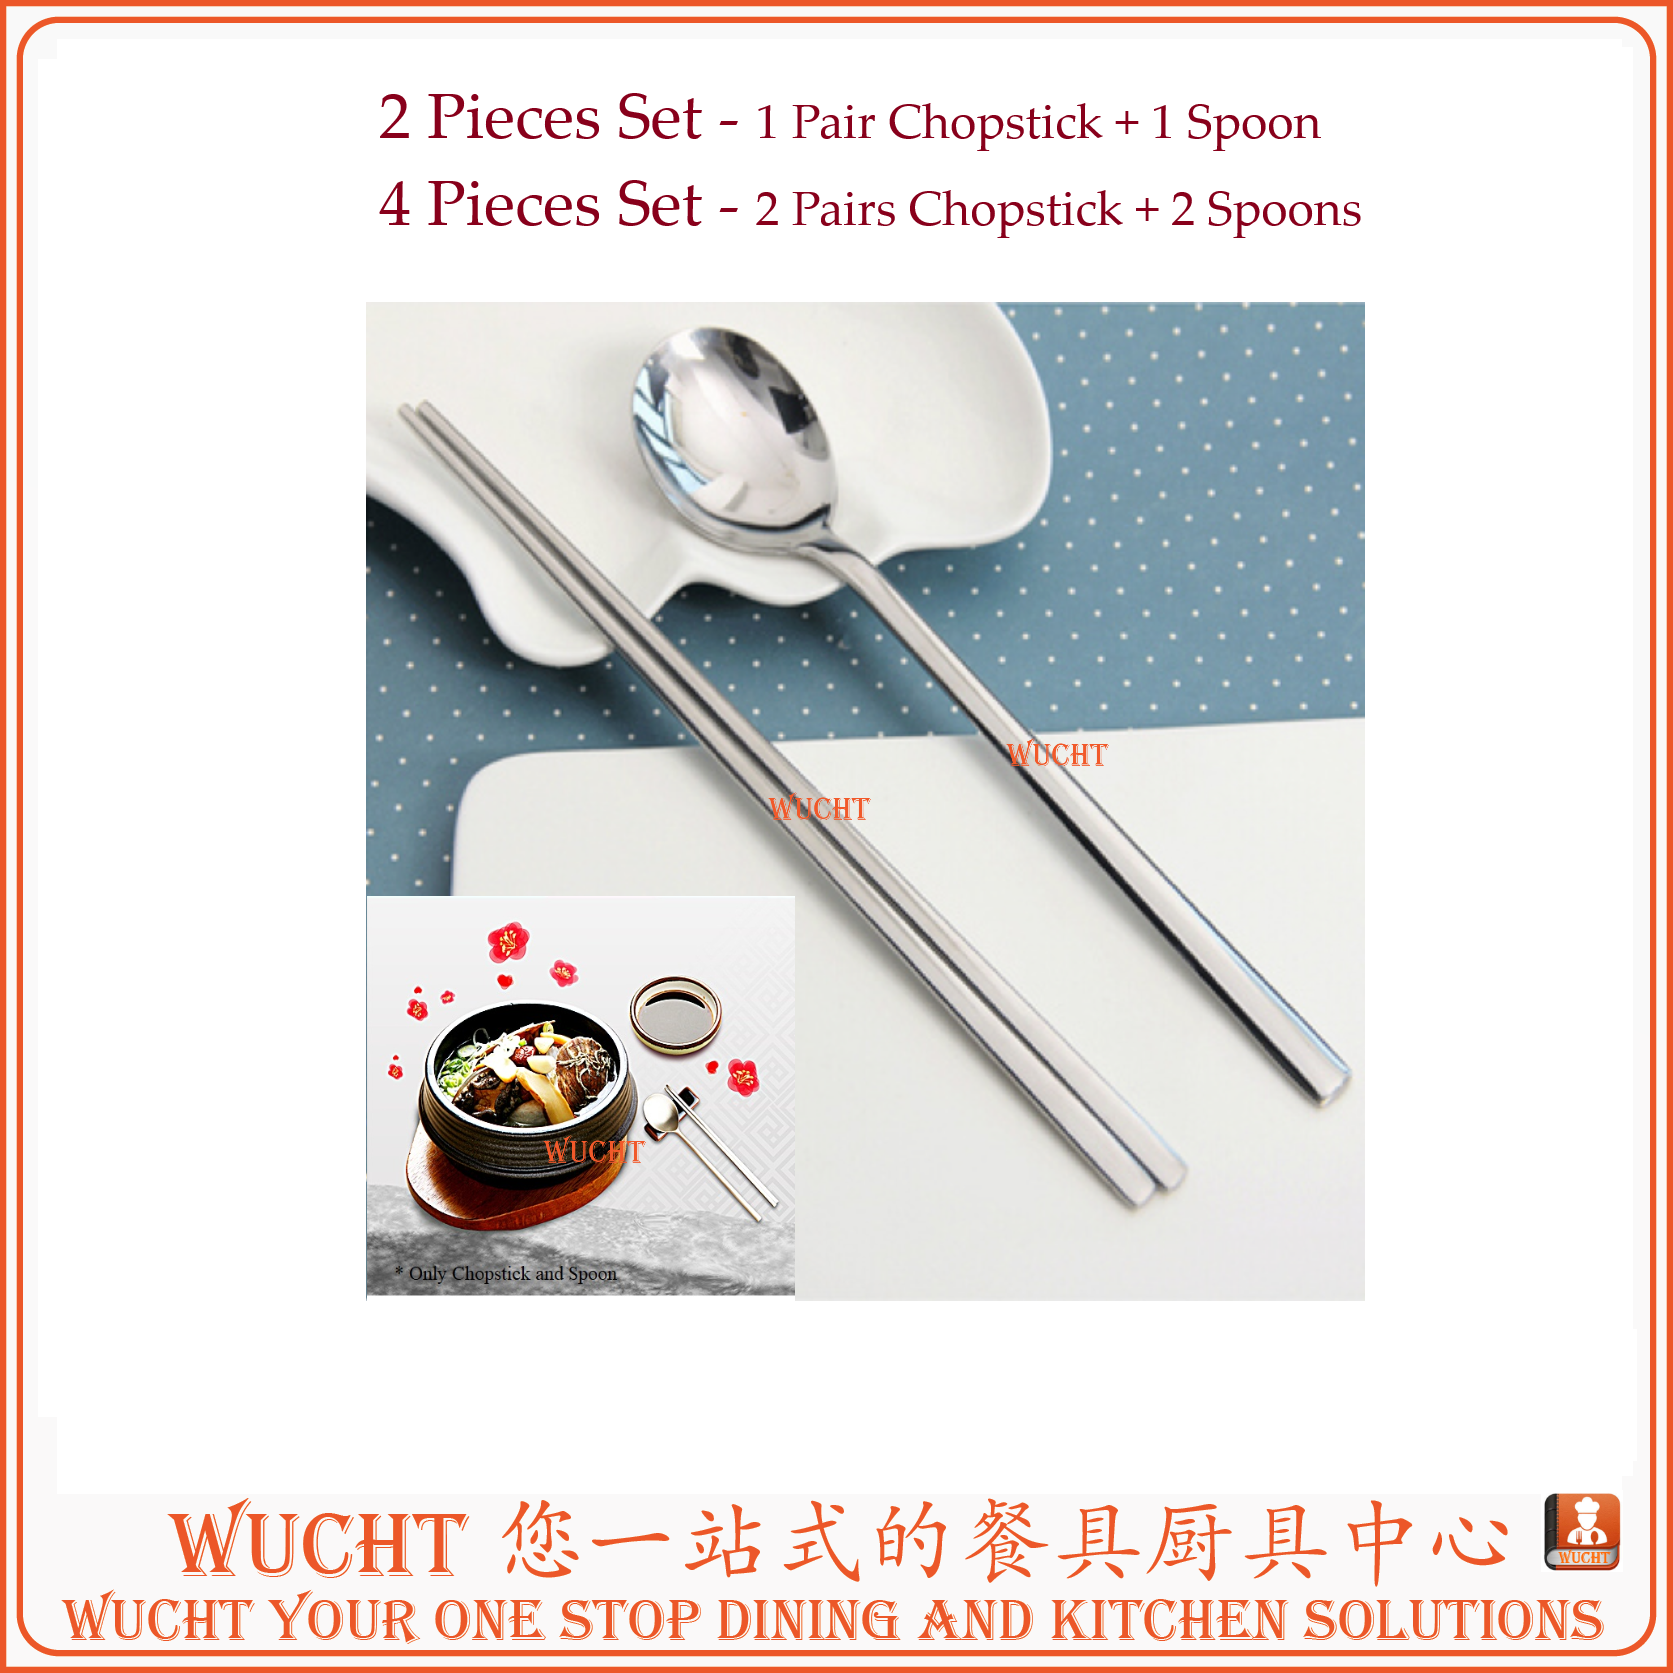 Korean Stainless Steel Chopsticks with Spoons Set 2 Pairs